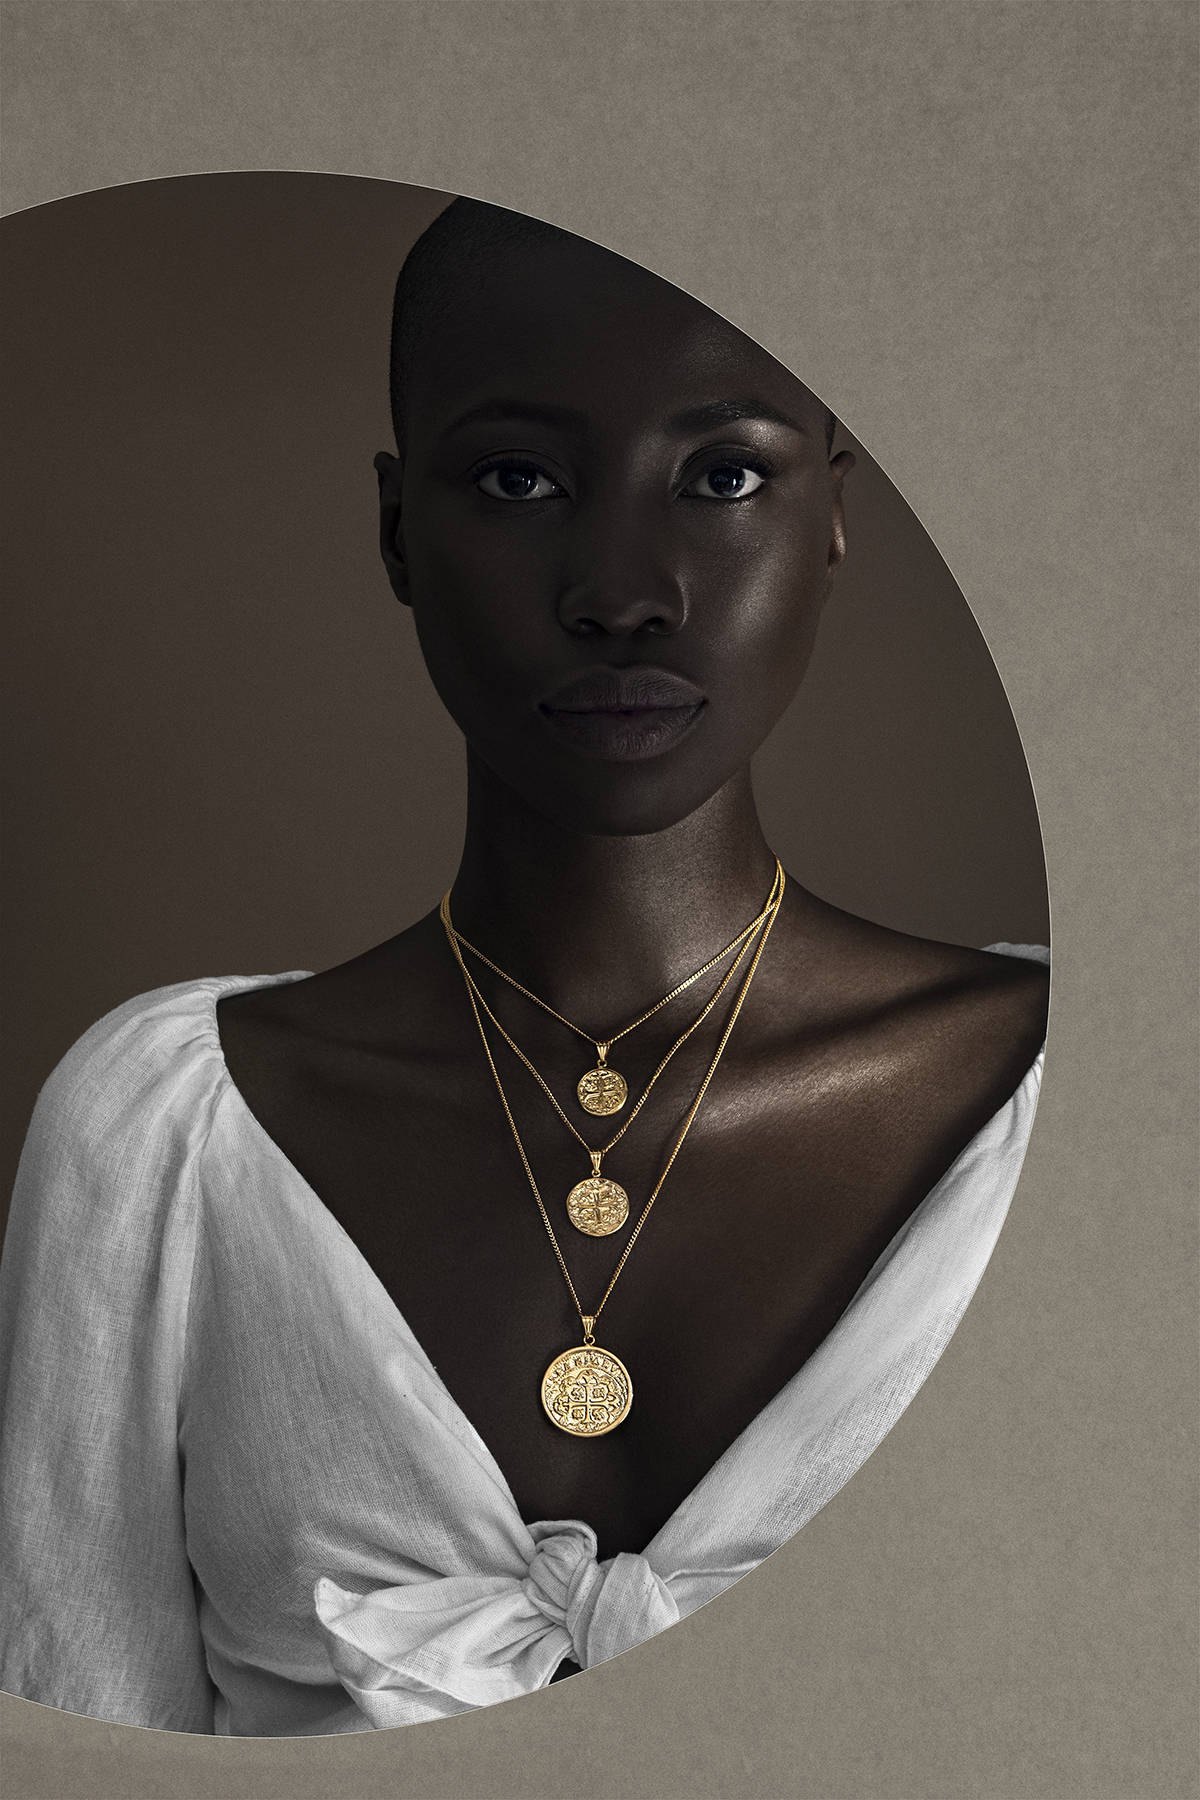 nashira arno jewerly nyc latin american designer from dominican republic modern sculptural statement gold jewelry coin necklace pendant layer.jpg